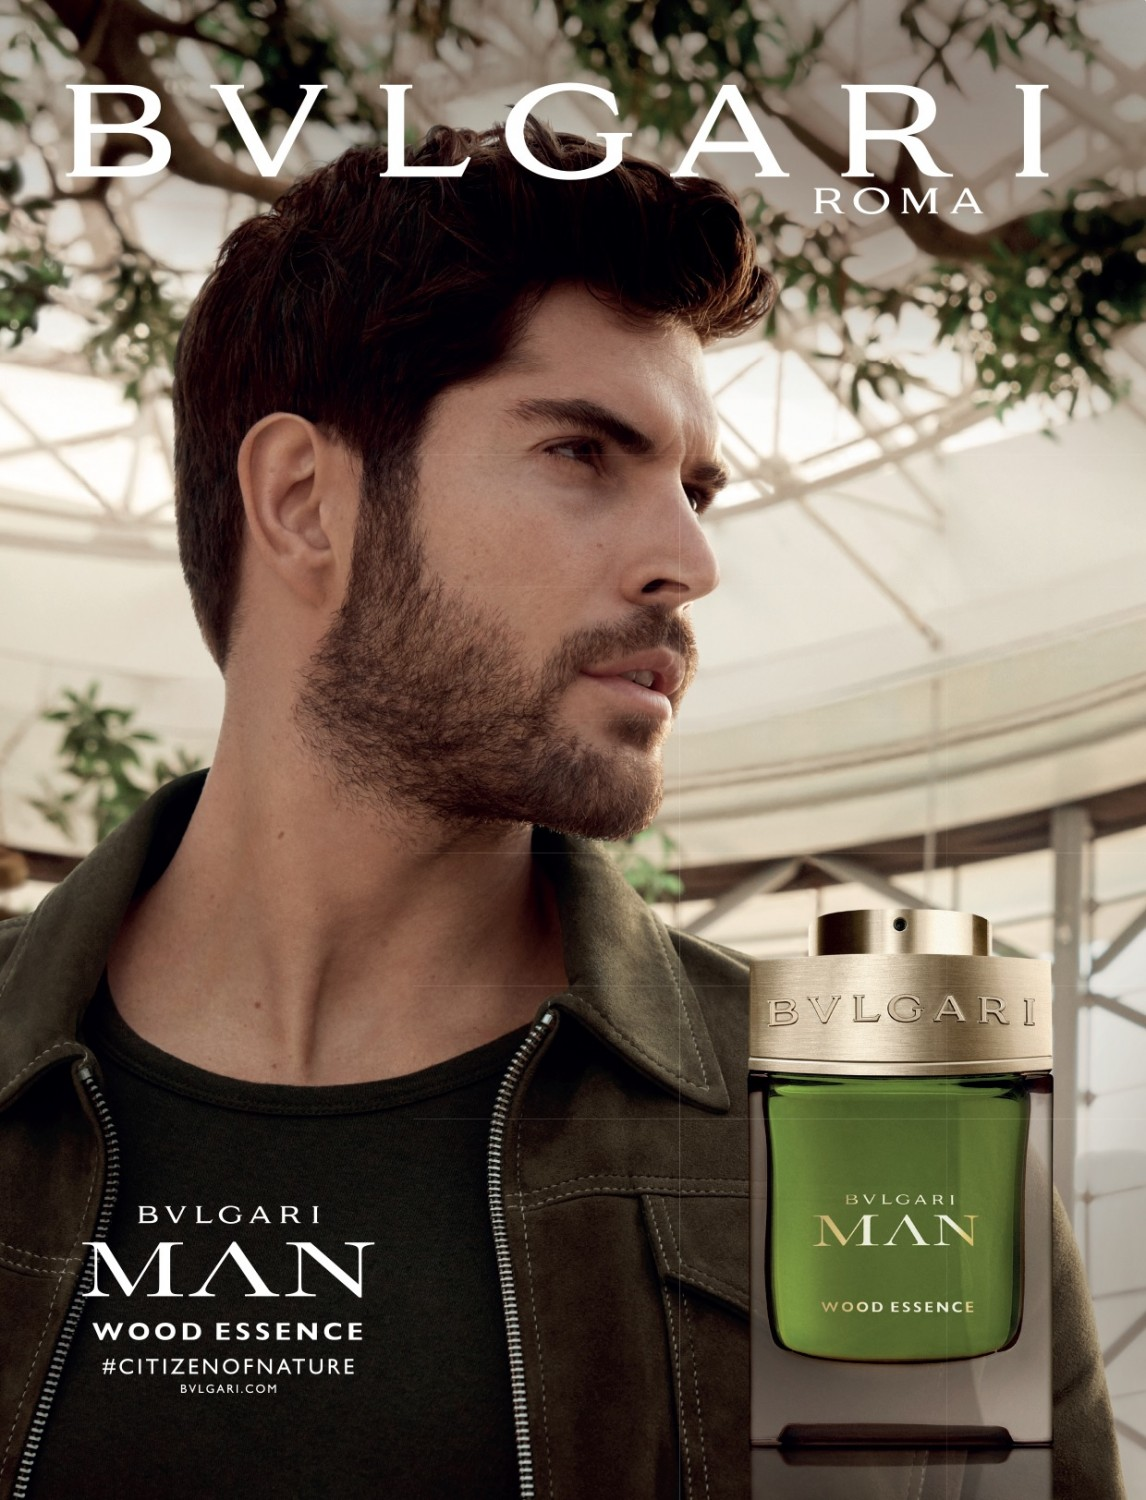 Bvlgari Man Wood Essence Perfume